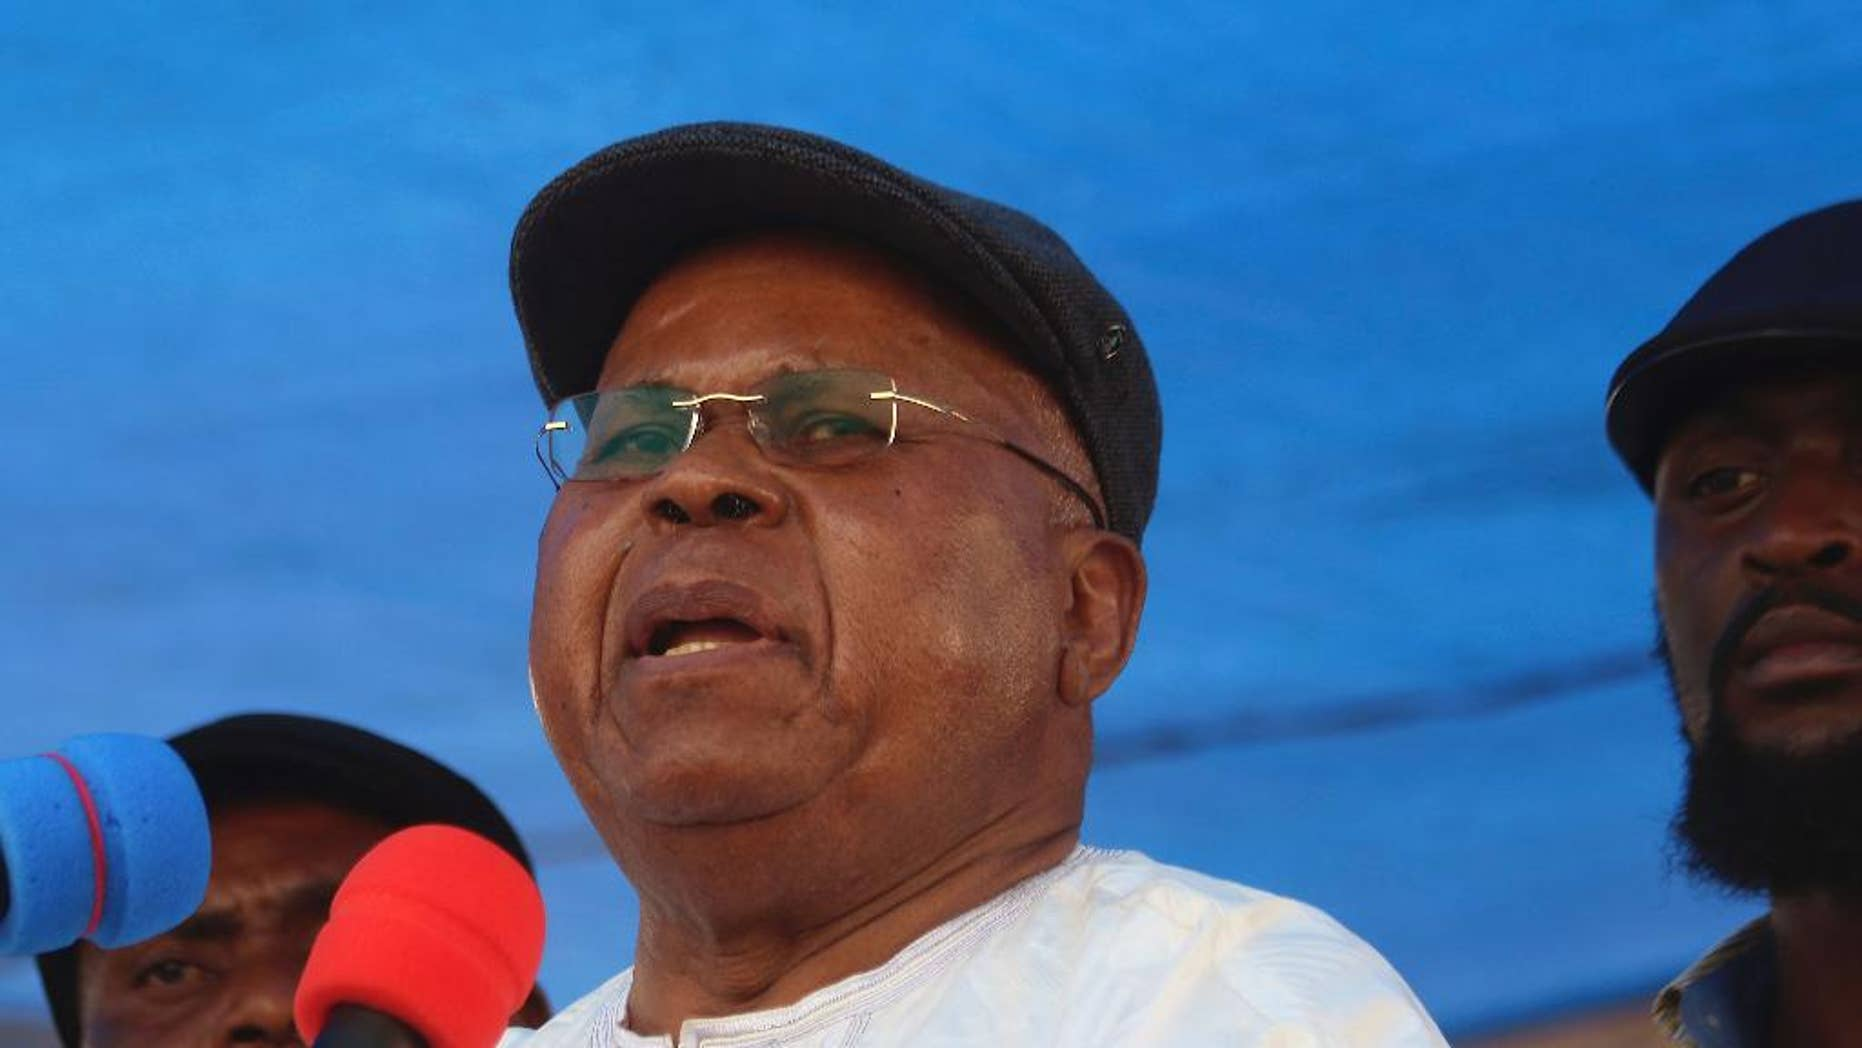 FILE - In this file photo taken on, Wednesday, July 31, 2016, Congo opposition leader Etienne Tshisekedi speak during a political rally in Kinshasa, Congo. Congo's opposition icon Etienne Tshisekedi, who pushed for democratic reforms for decades in this vast Central African nation and once declared himself president after saying the election was rigged by the incumbent, has died, his political party said late Wednesday, Feb. 1, 2017. (AP Photo/John Bompengo,File)